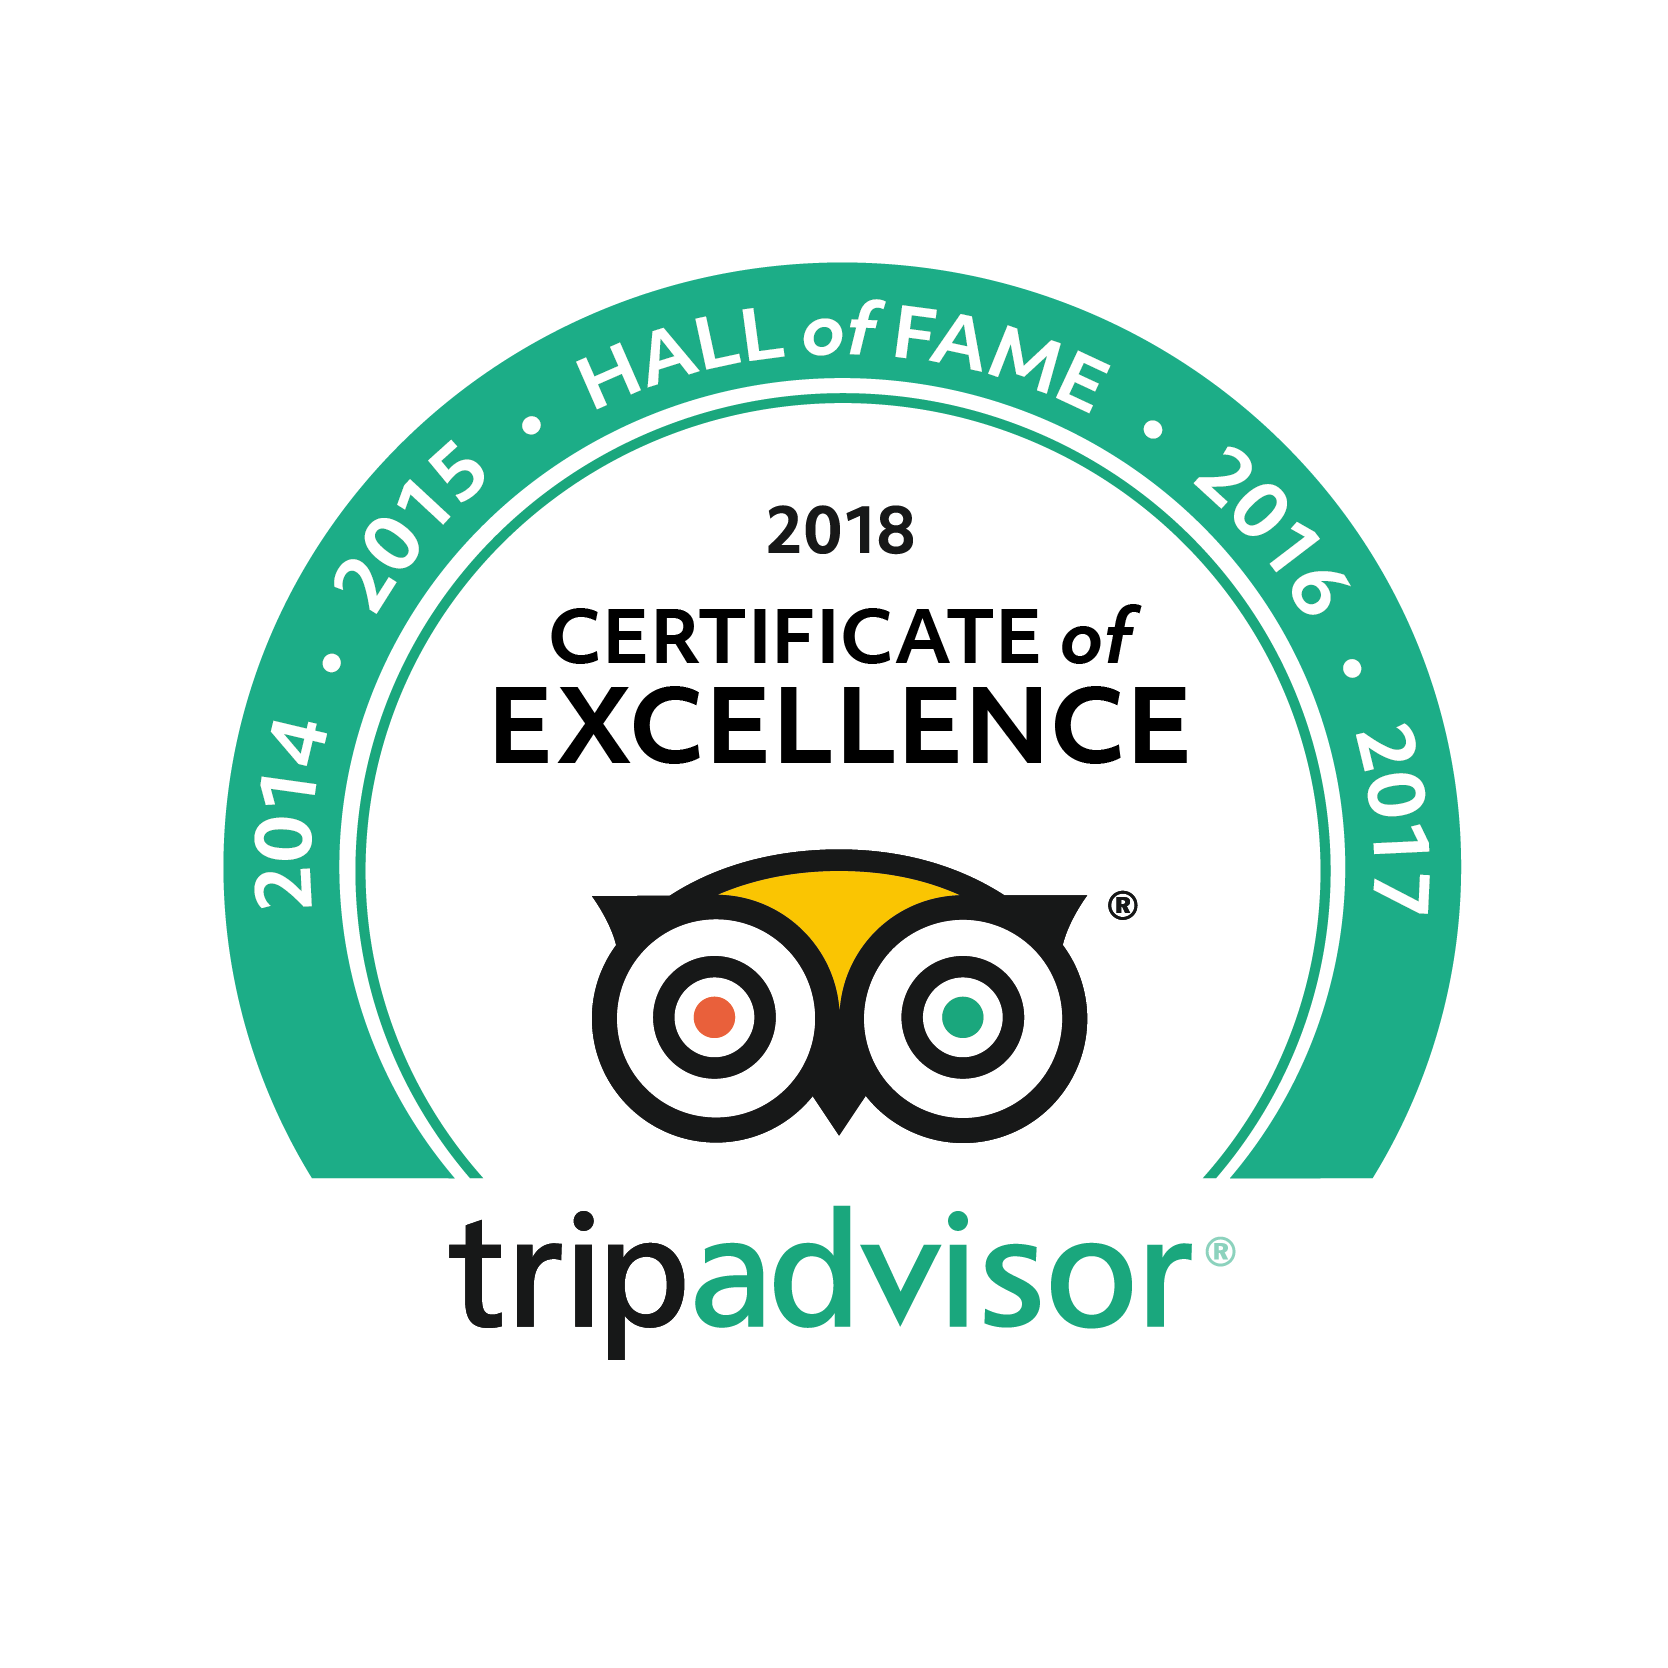 2014-2017 Hall of Fame 2018 Certificate of Excellence tripadvisor